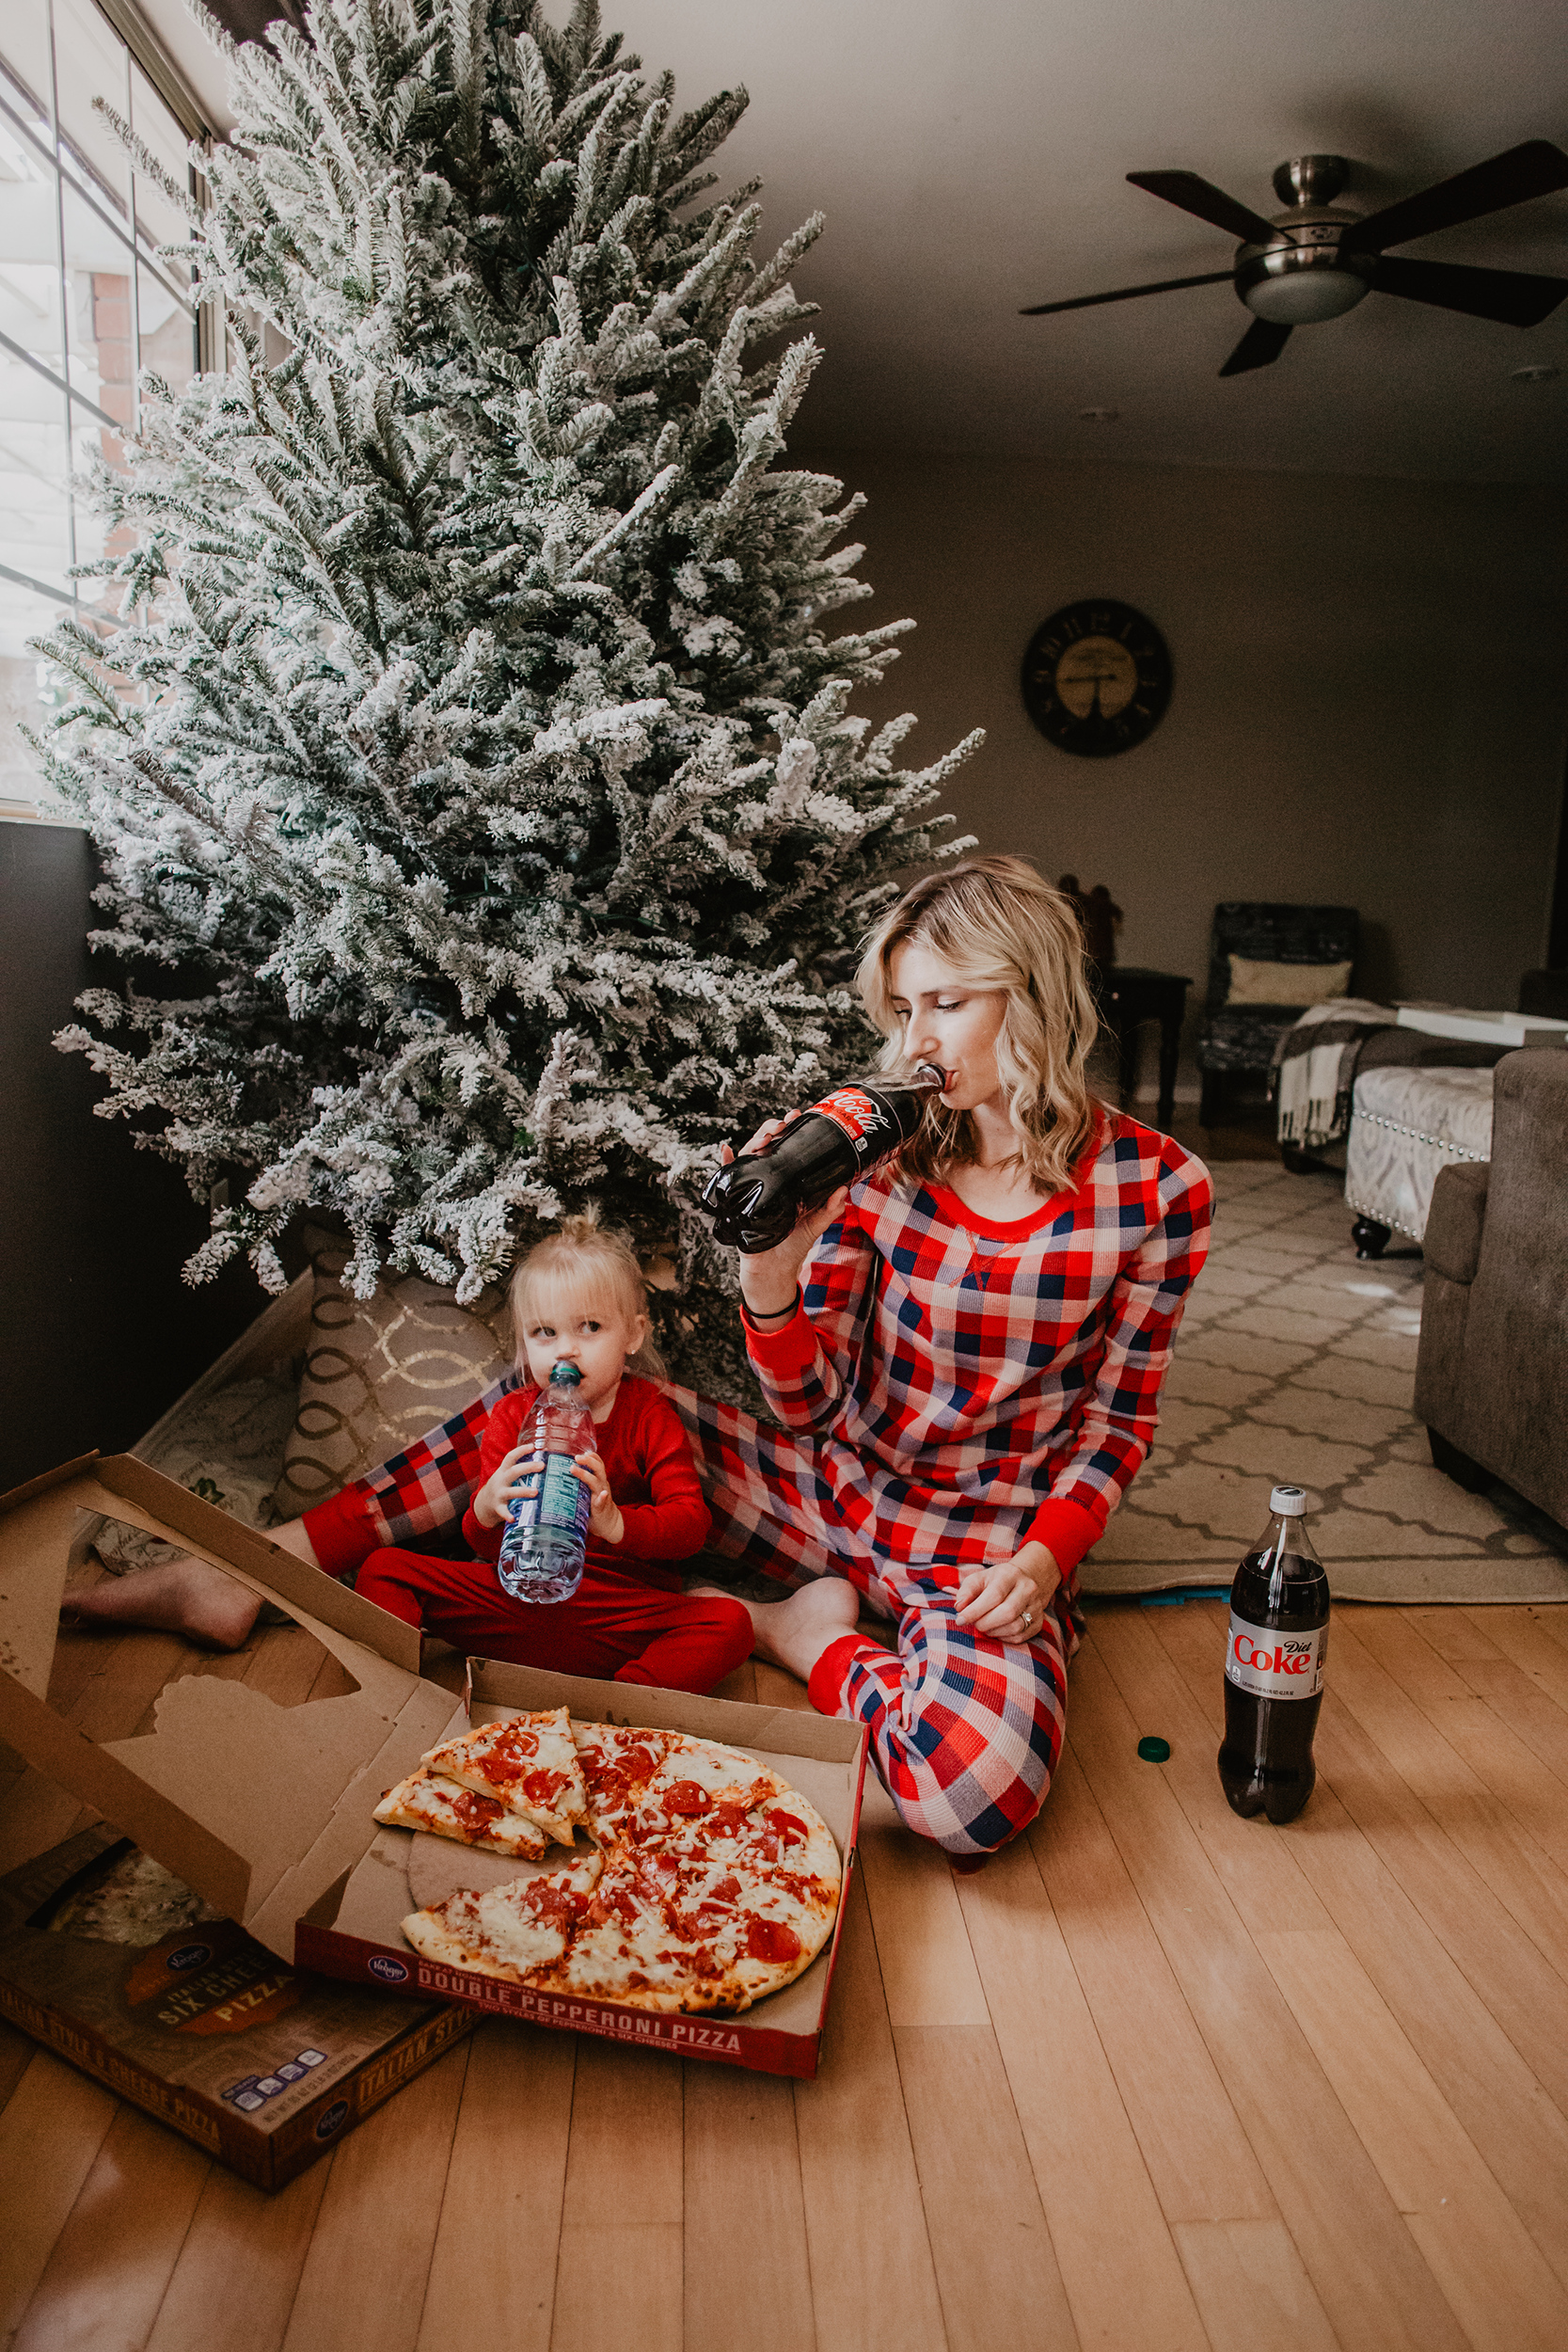 Coca-Cola Coupons - Kroger Fresh Ready Pizza -- Cutest Mommy-Daughter Photos - Mommy Blogger-Vlogger - The Overwhelmed Mommy